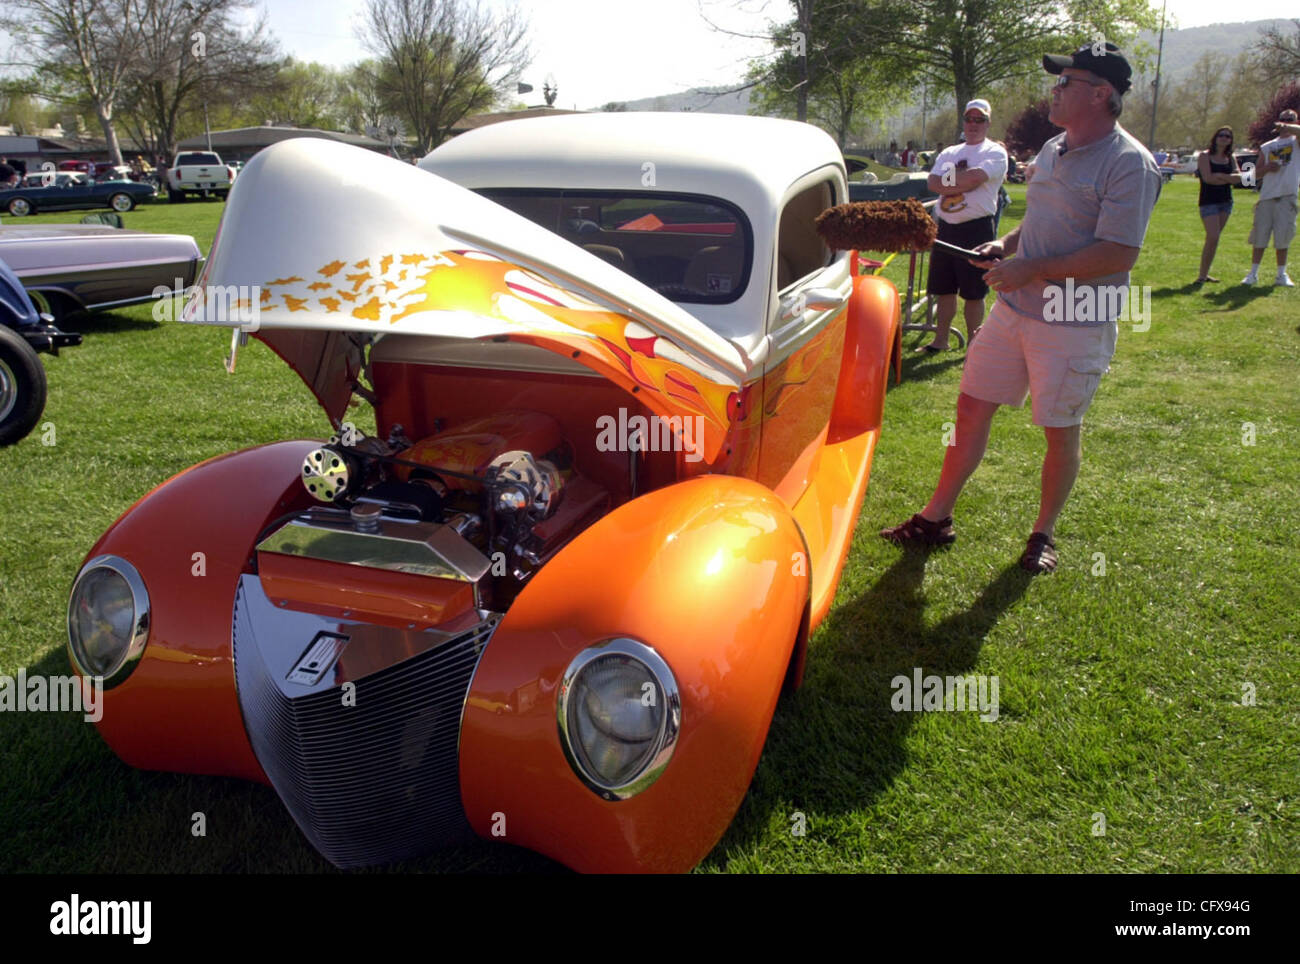 Mike Jones Of Selma Cleans His Custom 1941 Ford Truck That Is Made Mercury Cars From Two Trucks And Has A 350 Ram Jet Engine During The Goodguys Car Show Swap On